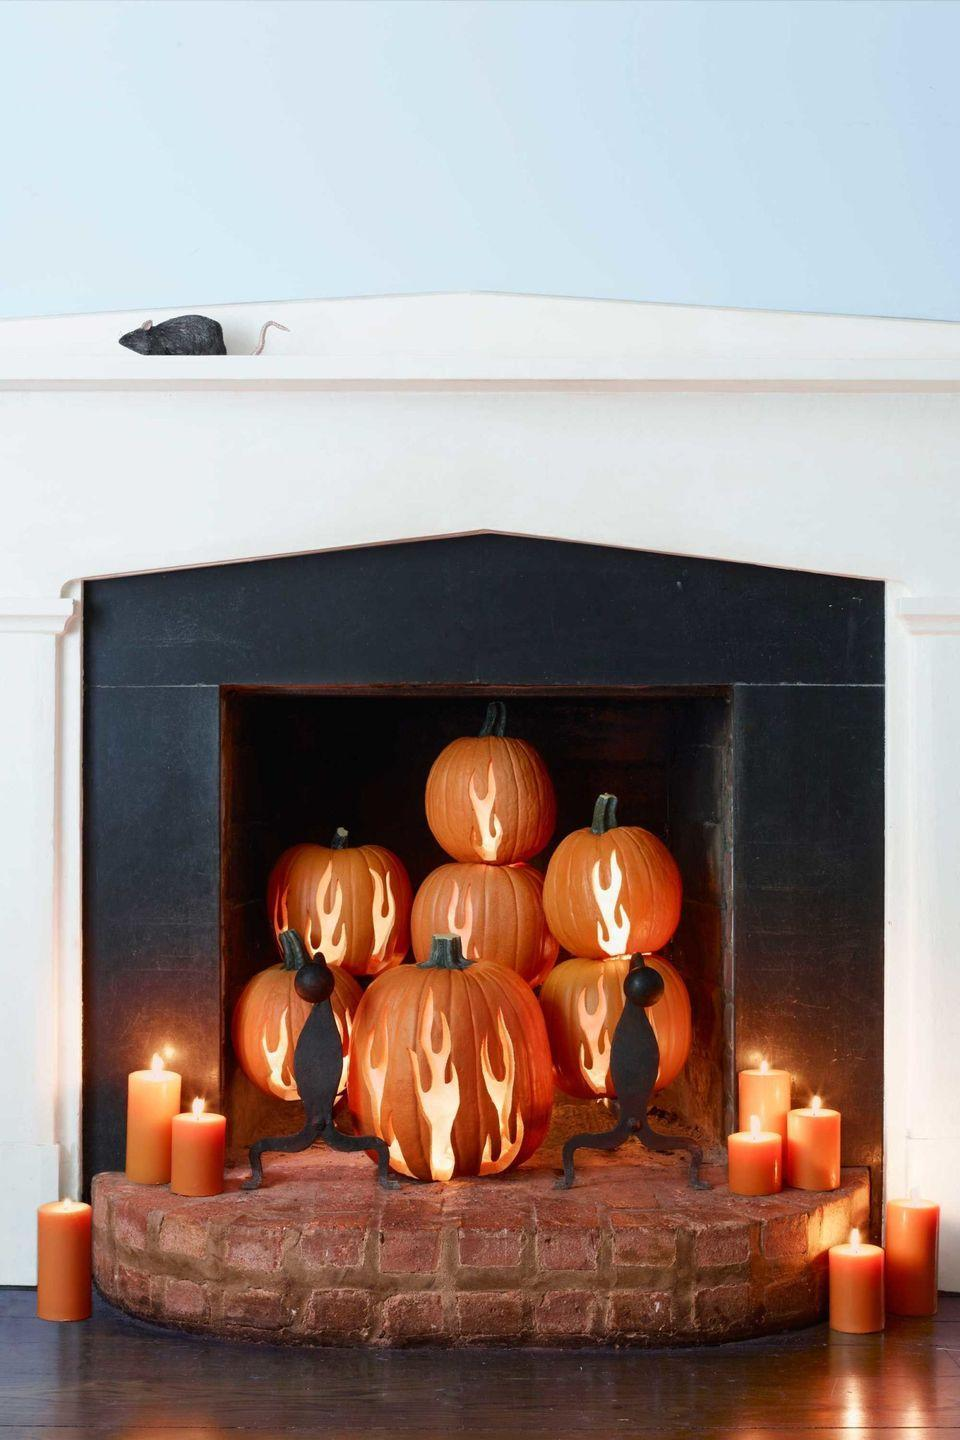 """<p>Carved with flickering flames, these clever pumpkins are absolute fire. Avoid any literal fires by trading real candles for battery-powered illumination instead. </p><p><em><a href=""""http://www.countryliving.com/diy-crafts/g1350/pumpkin-decorating-1009/"""" rel=""""nofollow noopener"""" target=""""_blank"""" data-ylk=""""slk:Get the tutorial at Country Living »"""" class=""""link rapid-noclick-resp"""">Get the tutorial at Country Living »</a></em> </p>"""